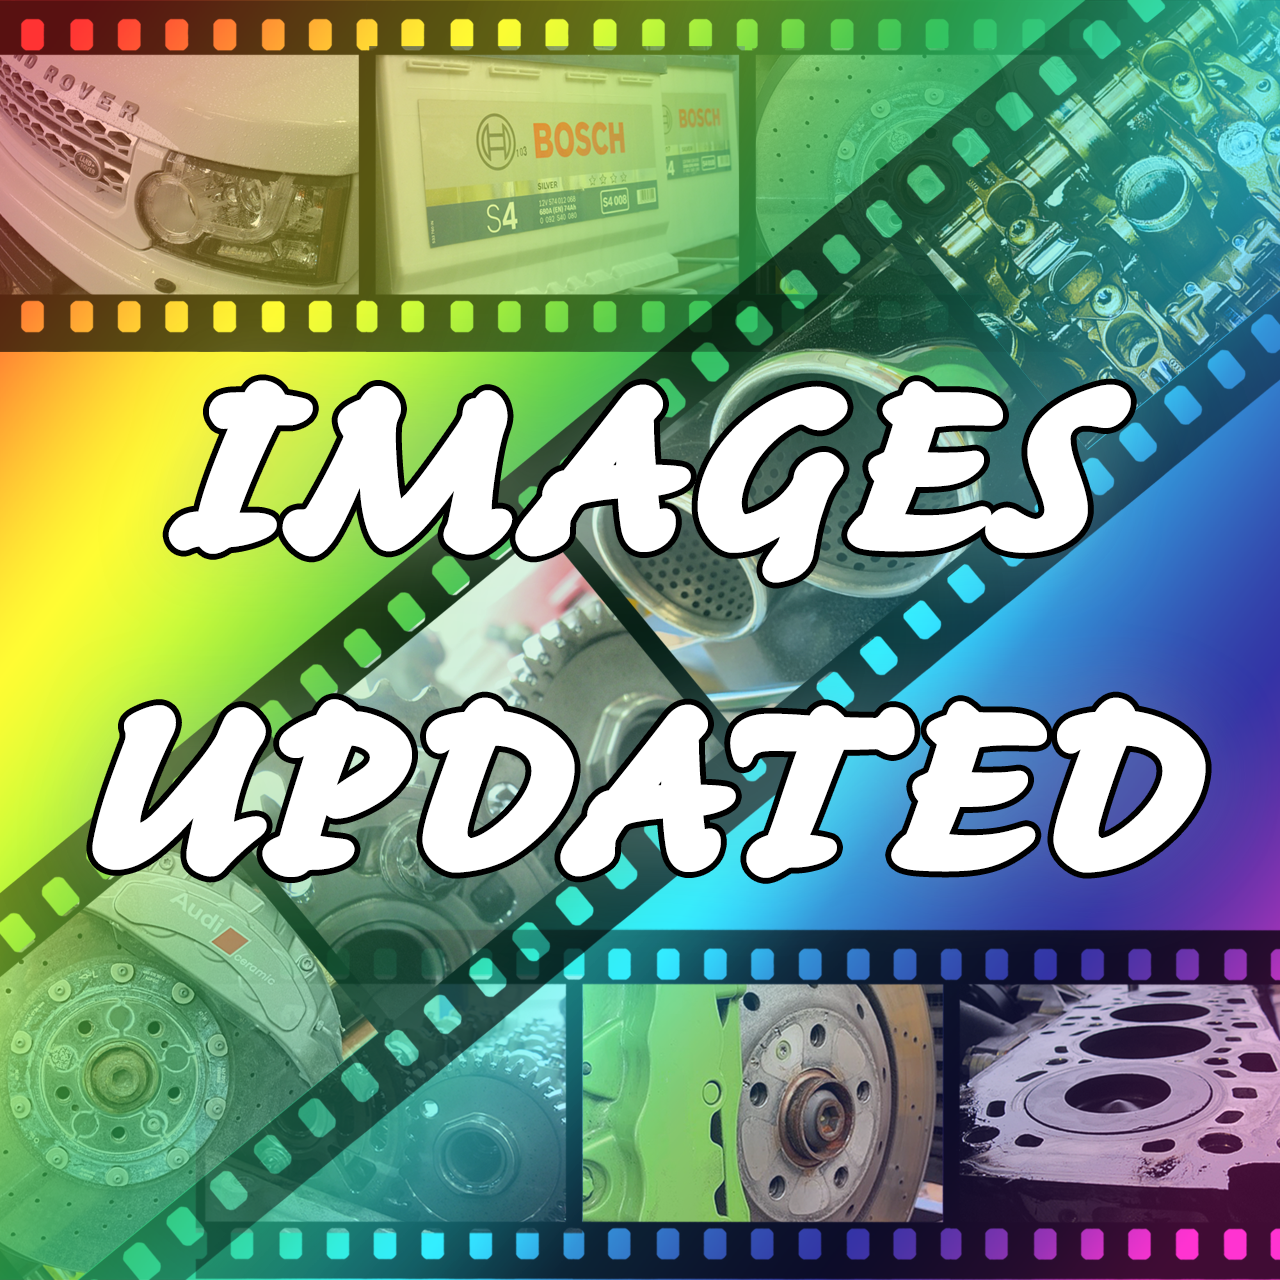 images_updated_square.png